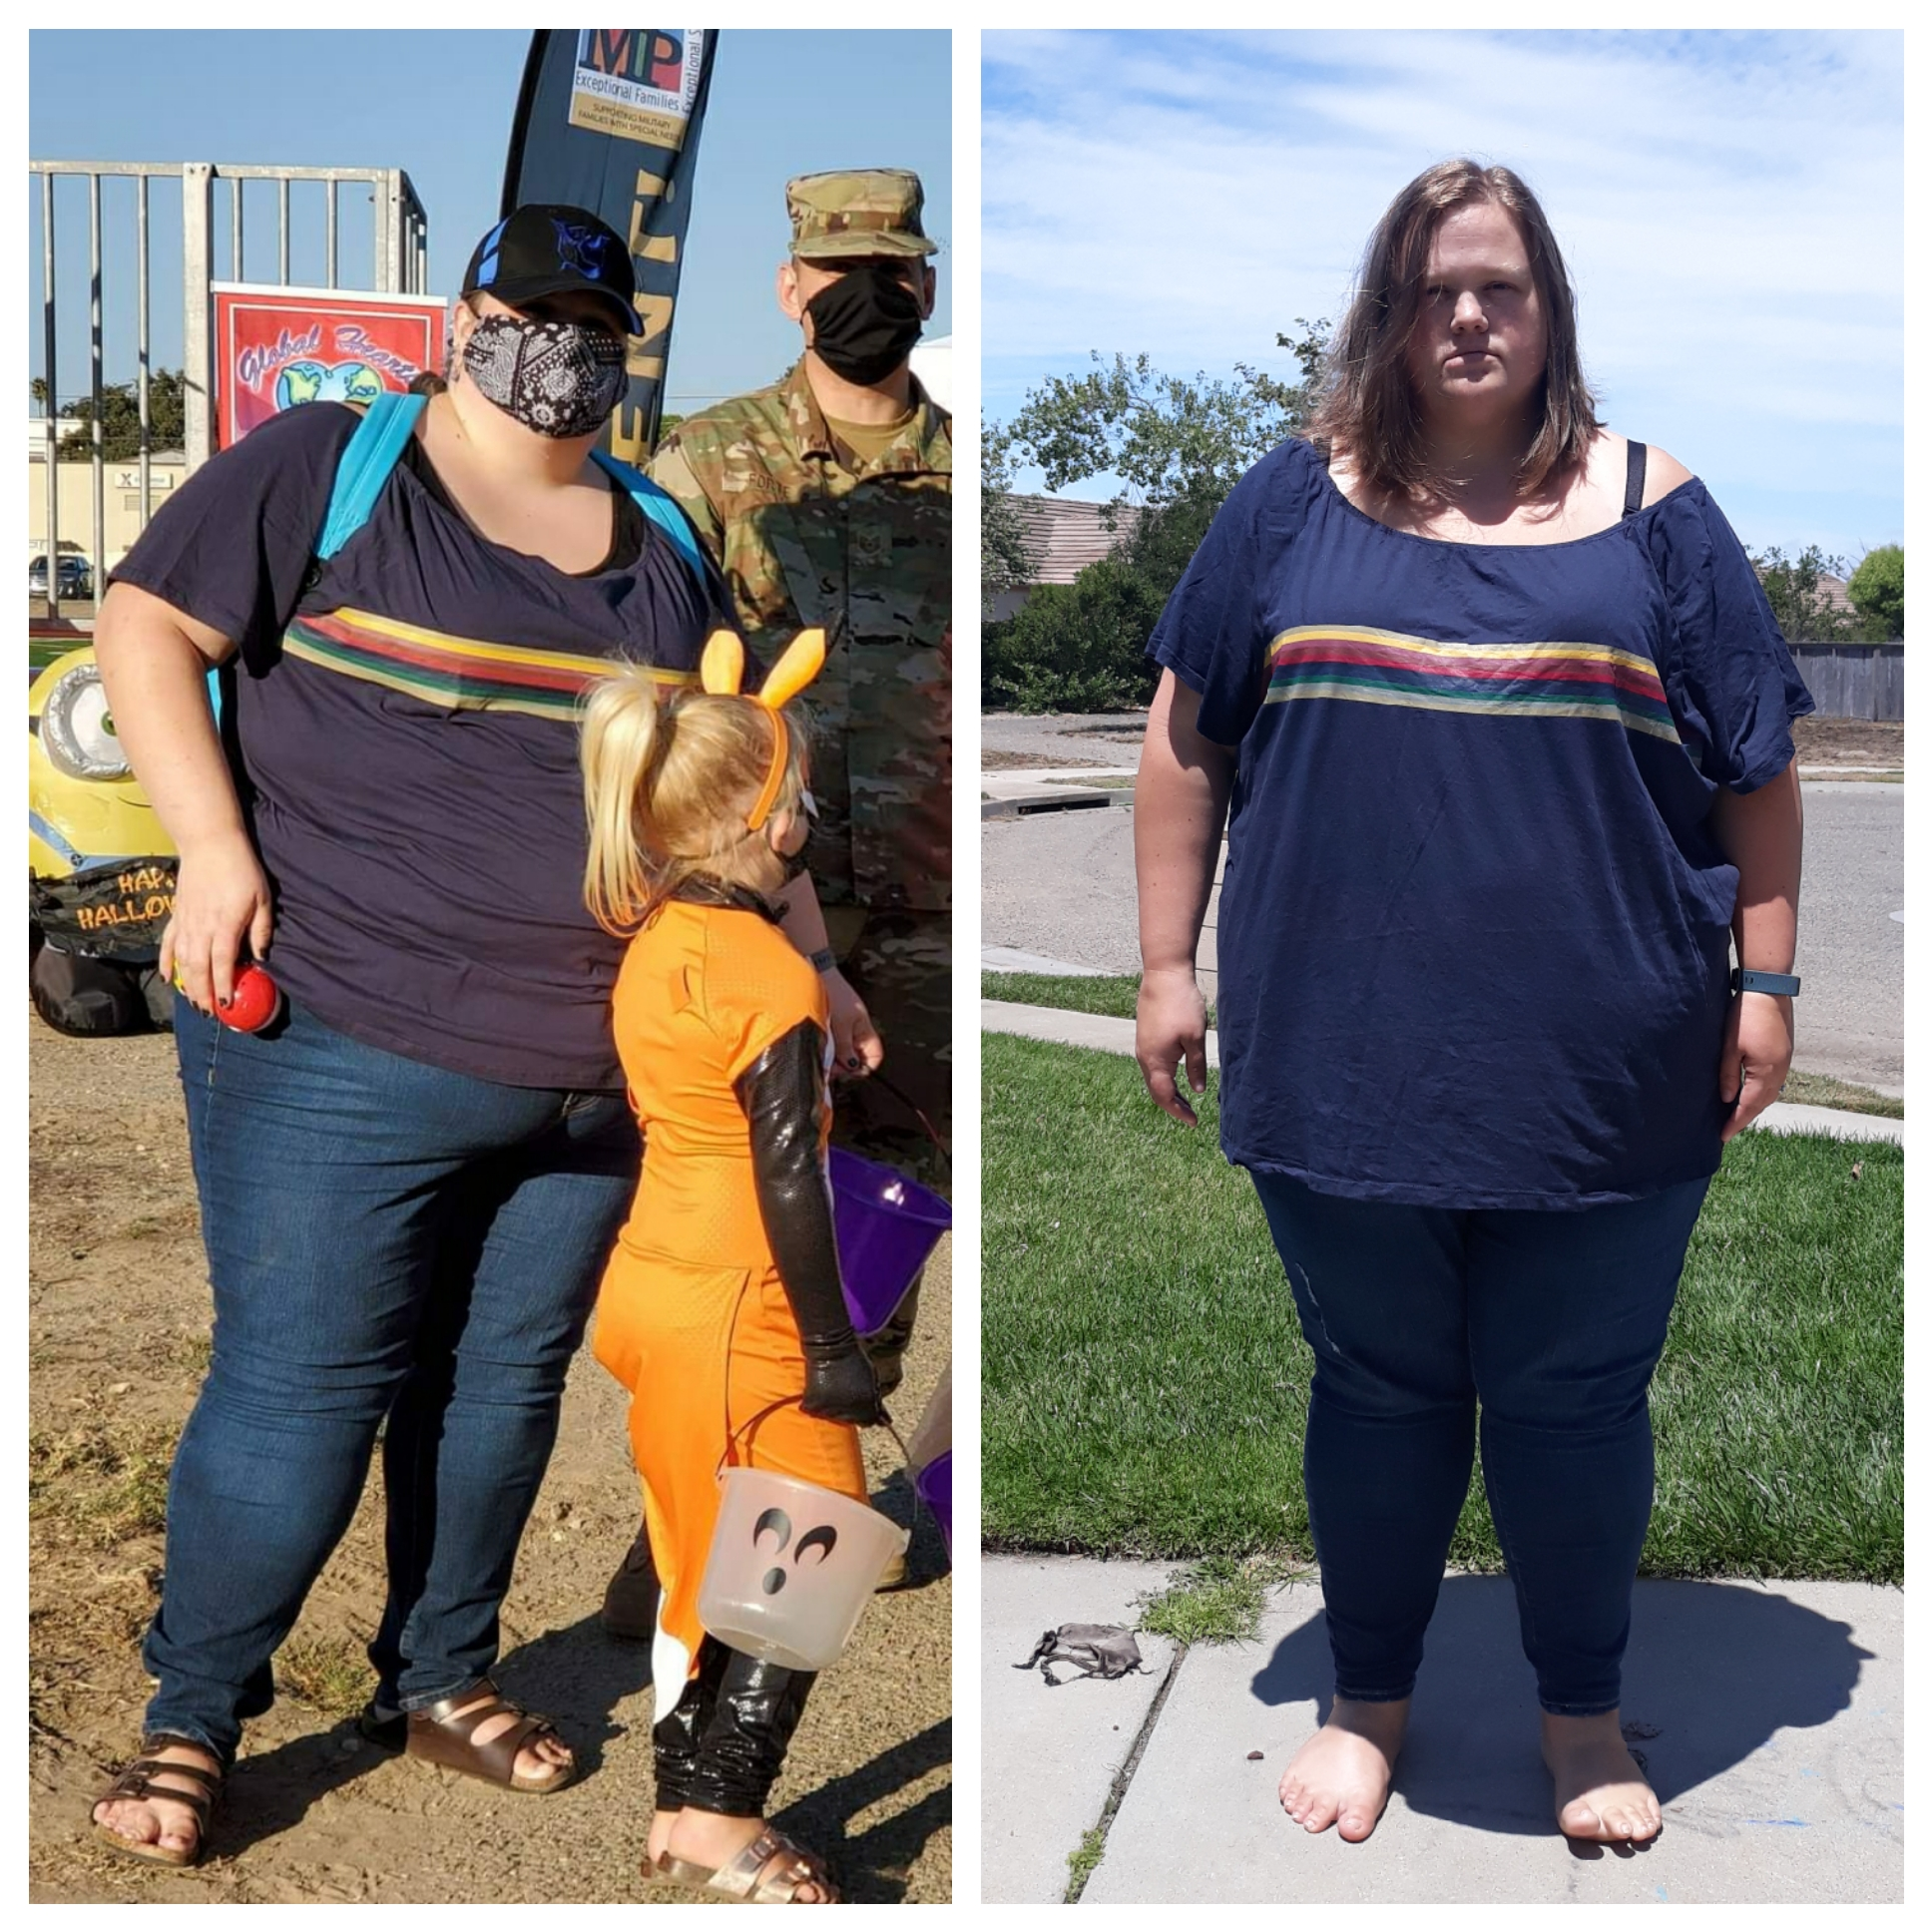 52 lbs Fat Loss Before and After 5 foot 6 Female 369 lbs to 317 lbs